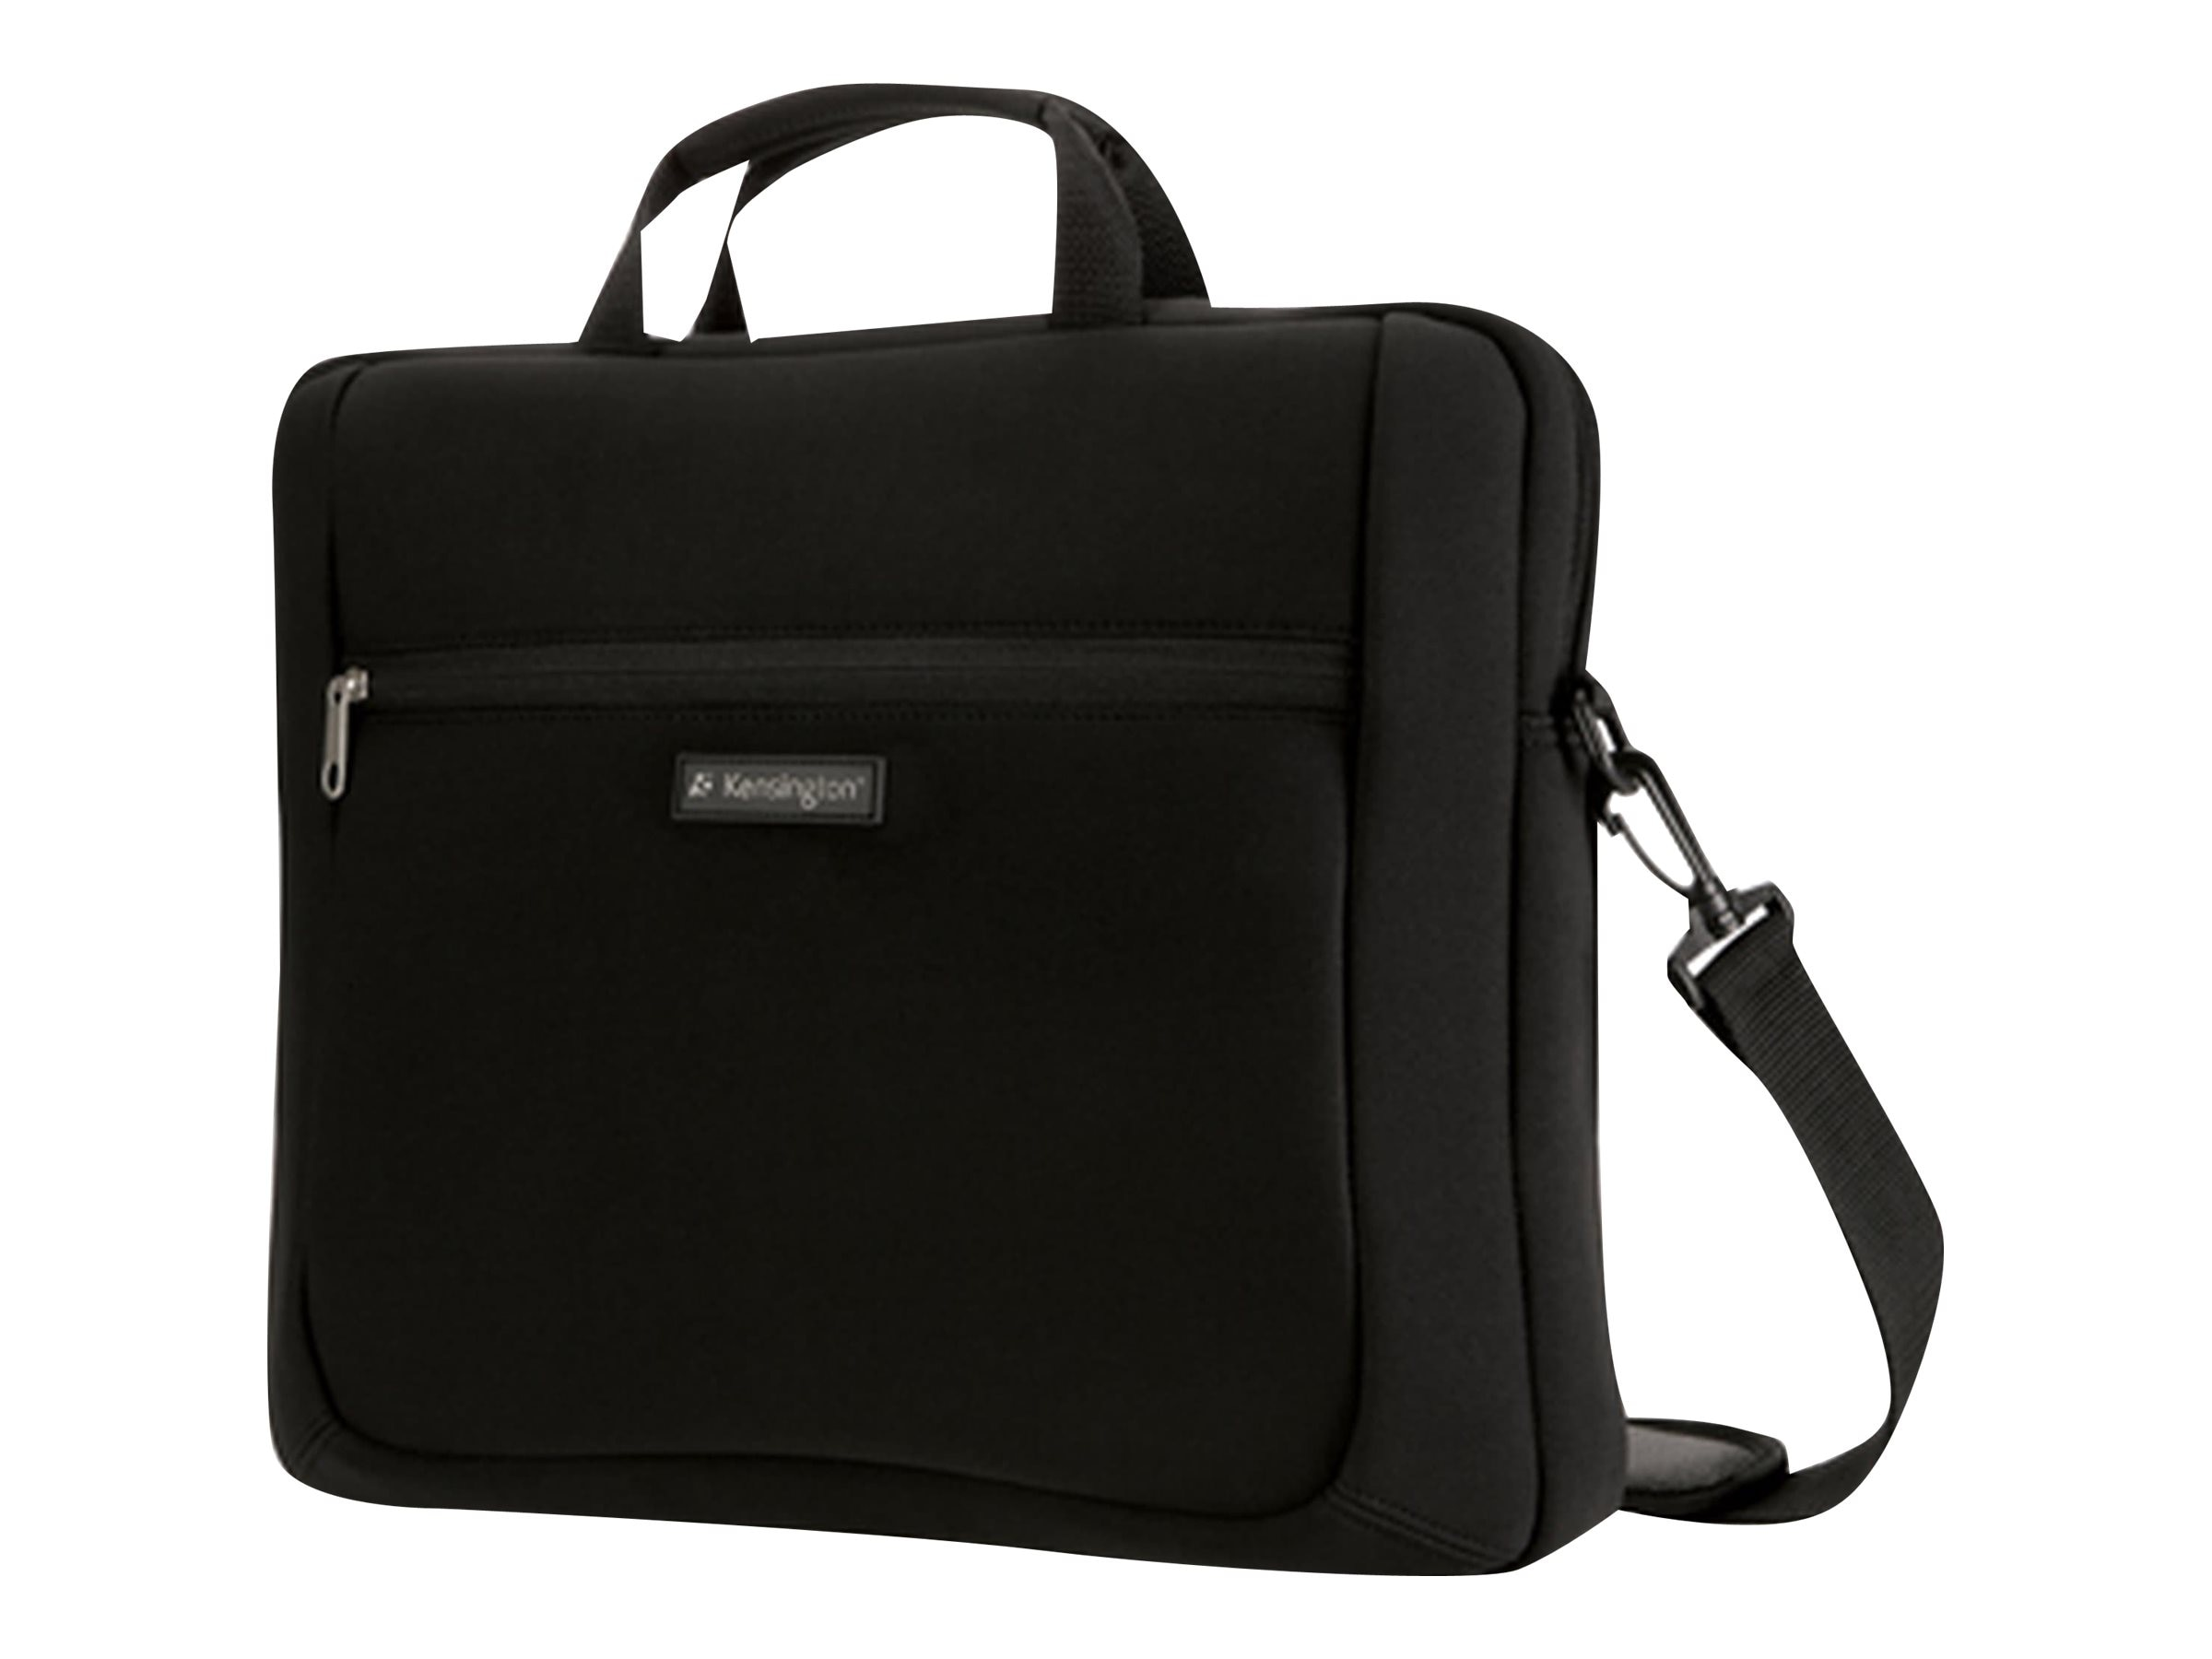 Kensington Simply Portable SP15 Neoprene Laptop Sleeve 15.6, Black, K62561USB